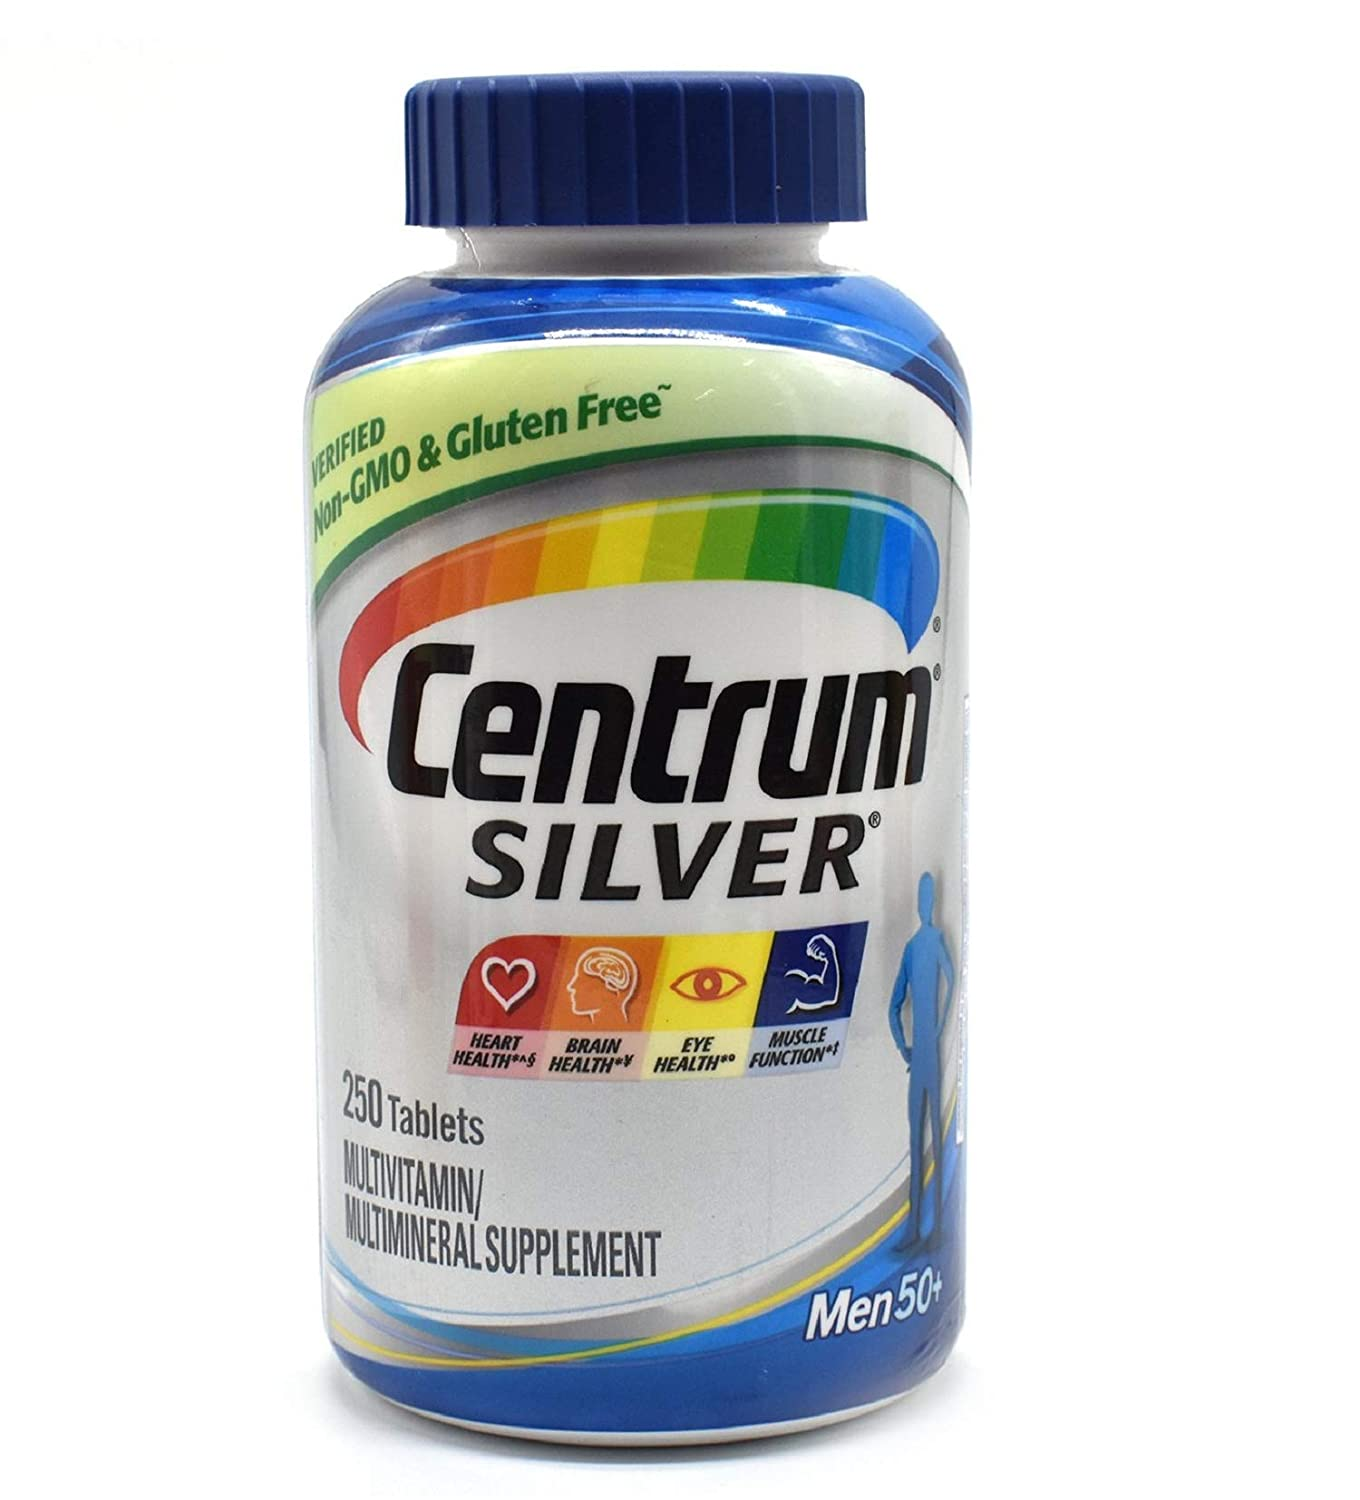 Centrum Silver Men s – 250 tablets